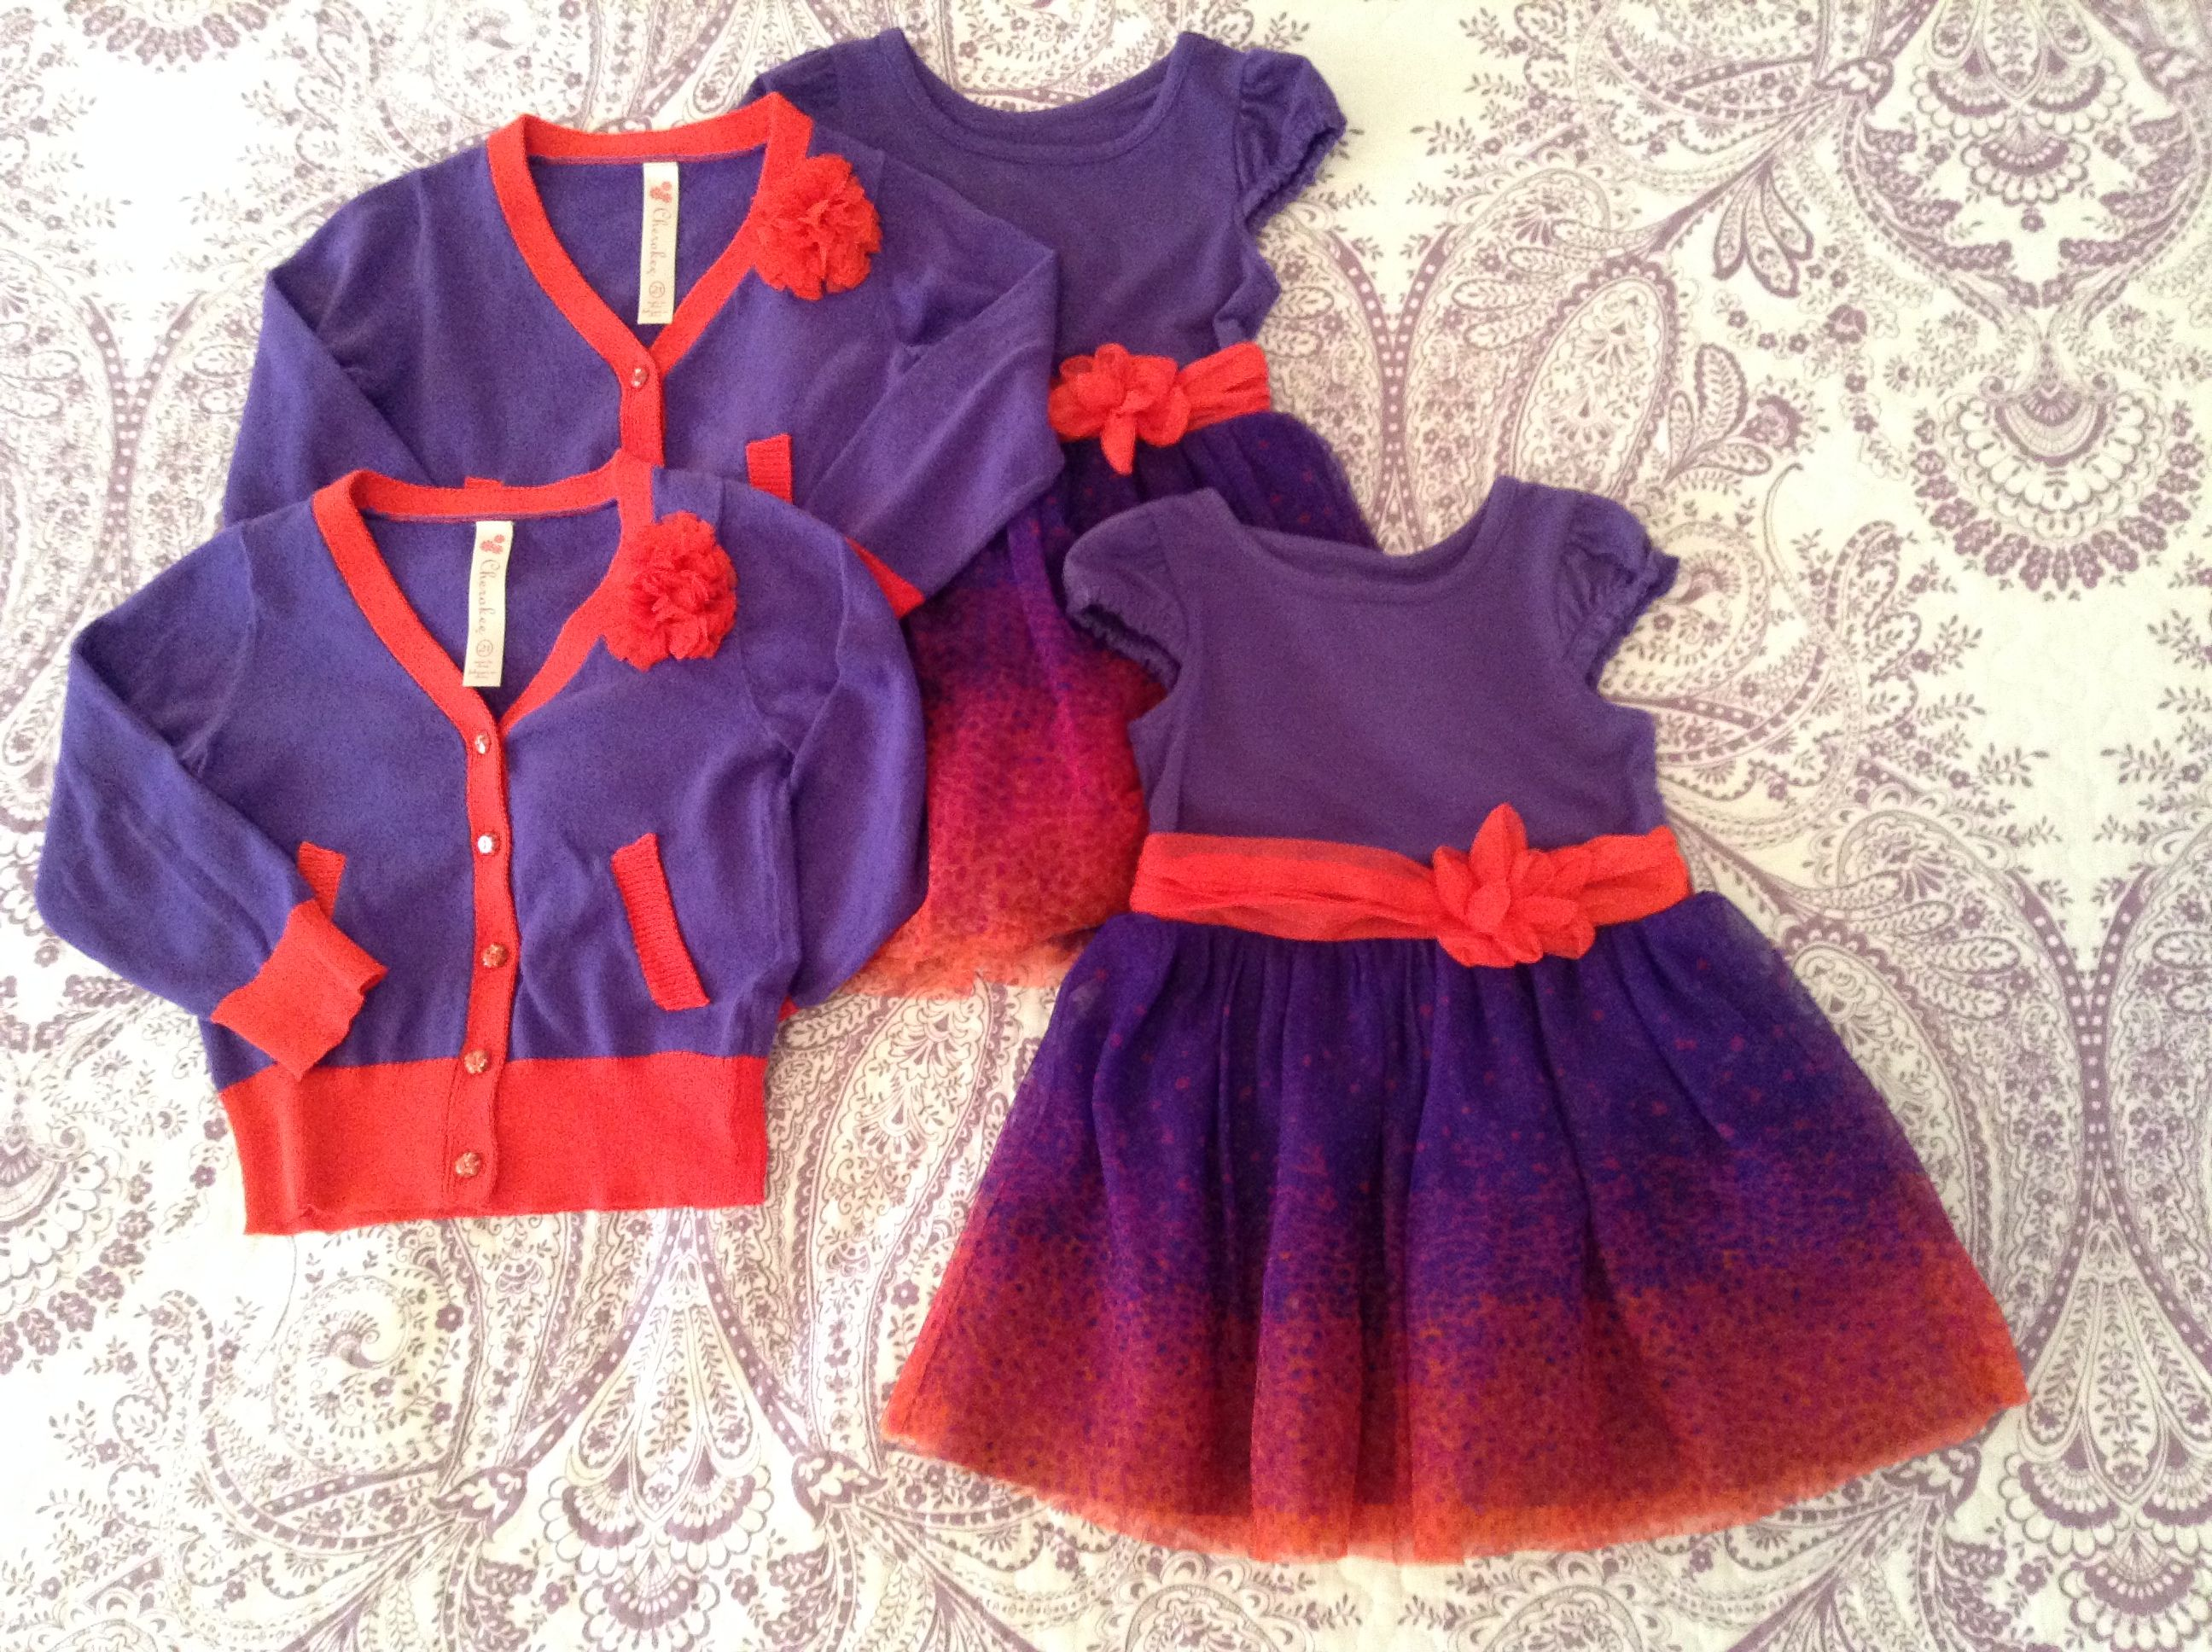 Cherokee 2t Dress with matching sweater Purple and Red Dress has a nice tulle skirt and this combo definitely brought the compliments especially when paired with the red glitter shoes.  $10 each set